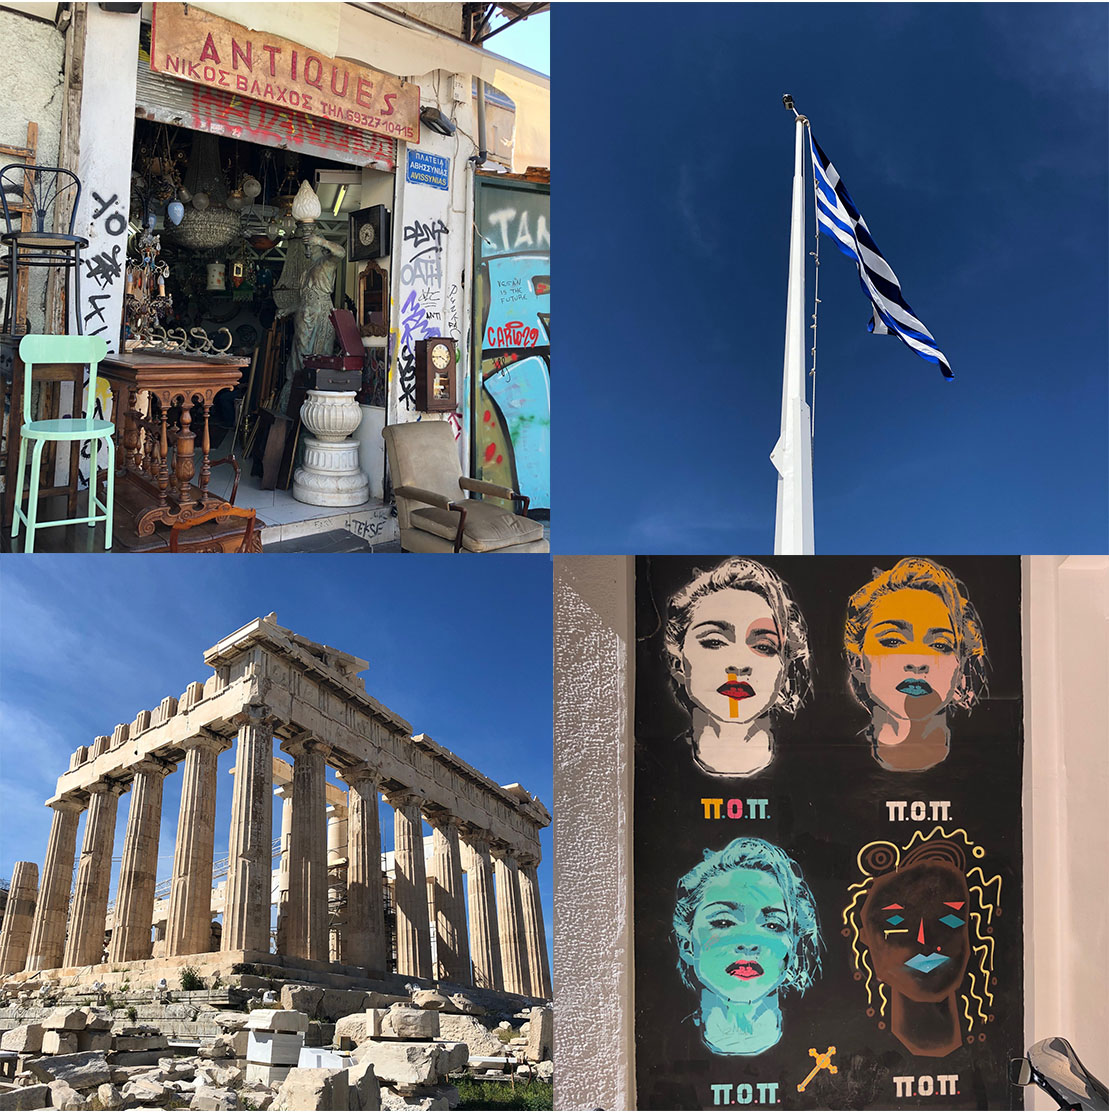 Sonne in Athen